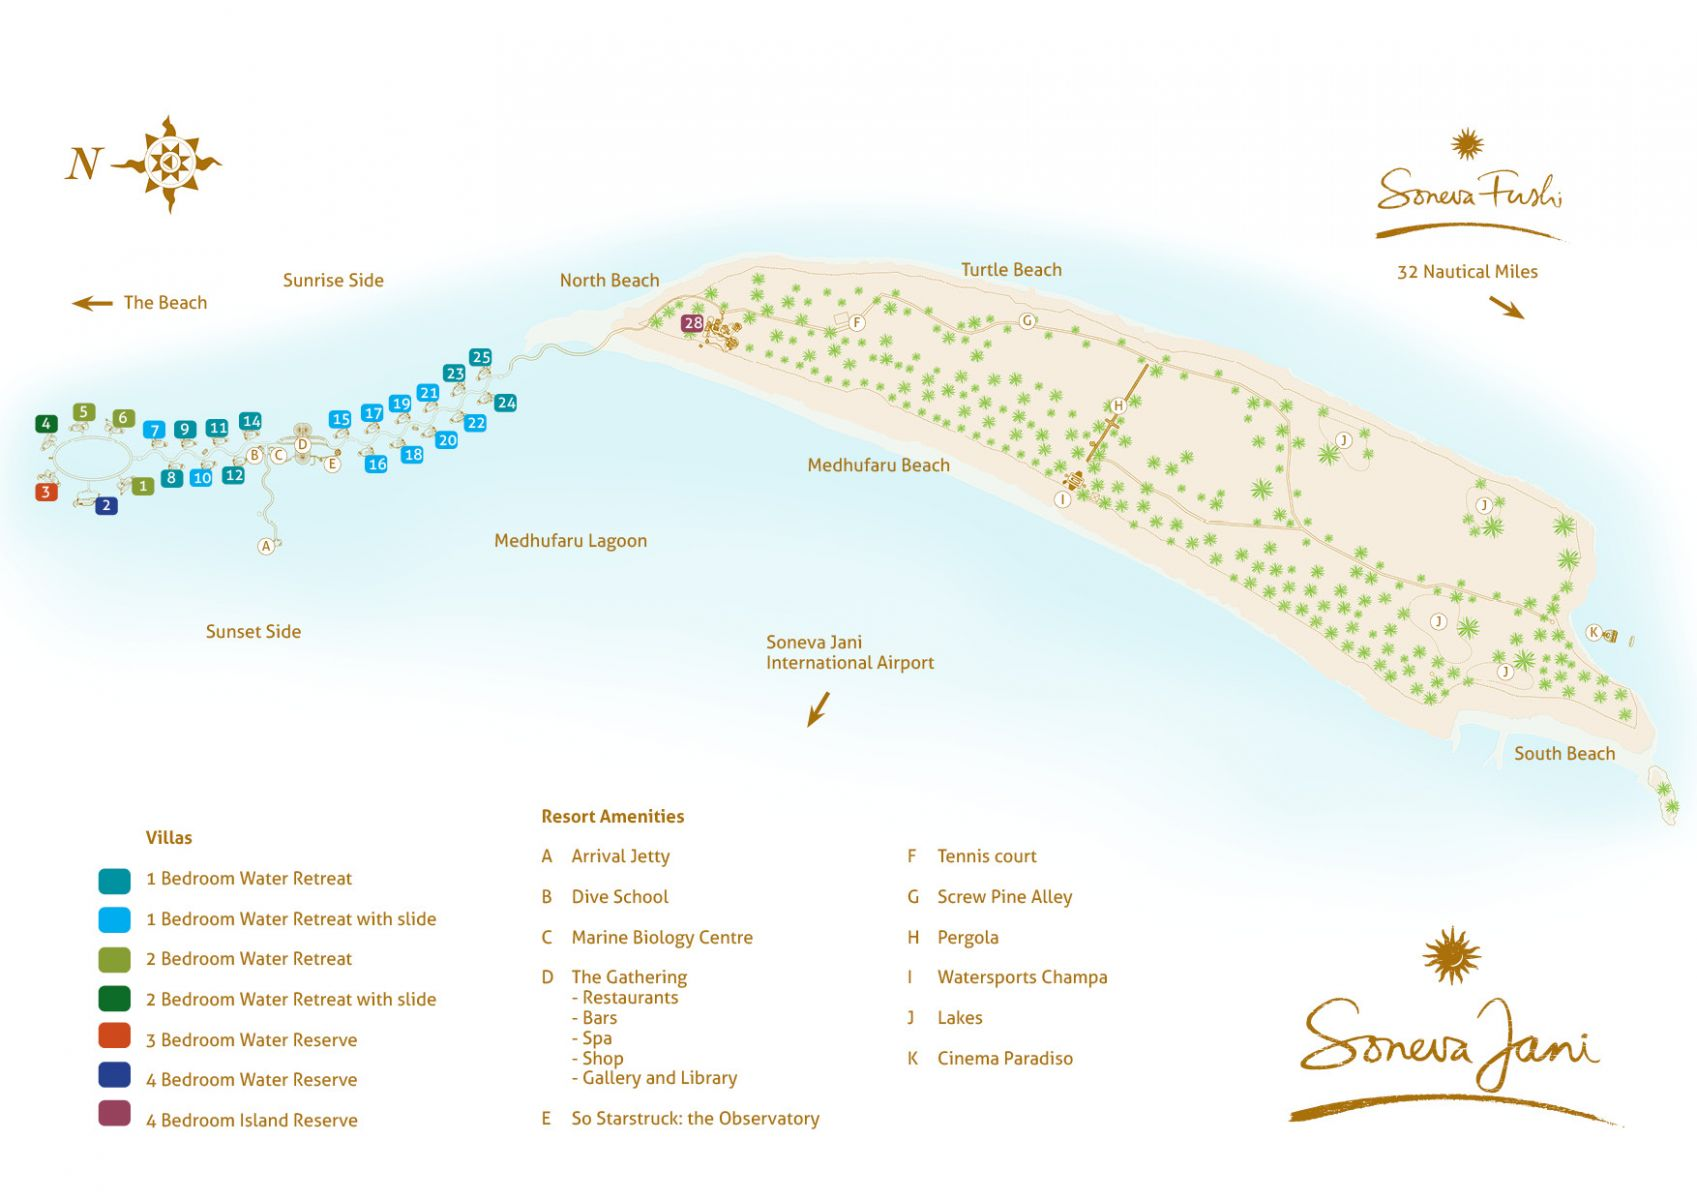 soneva-jani-resort-map_dec16